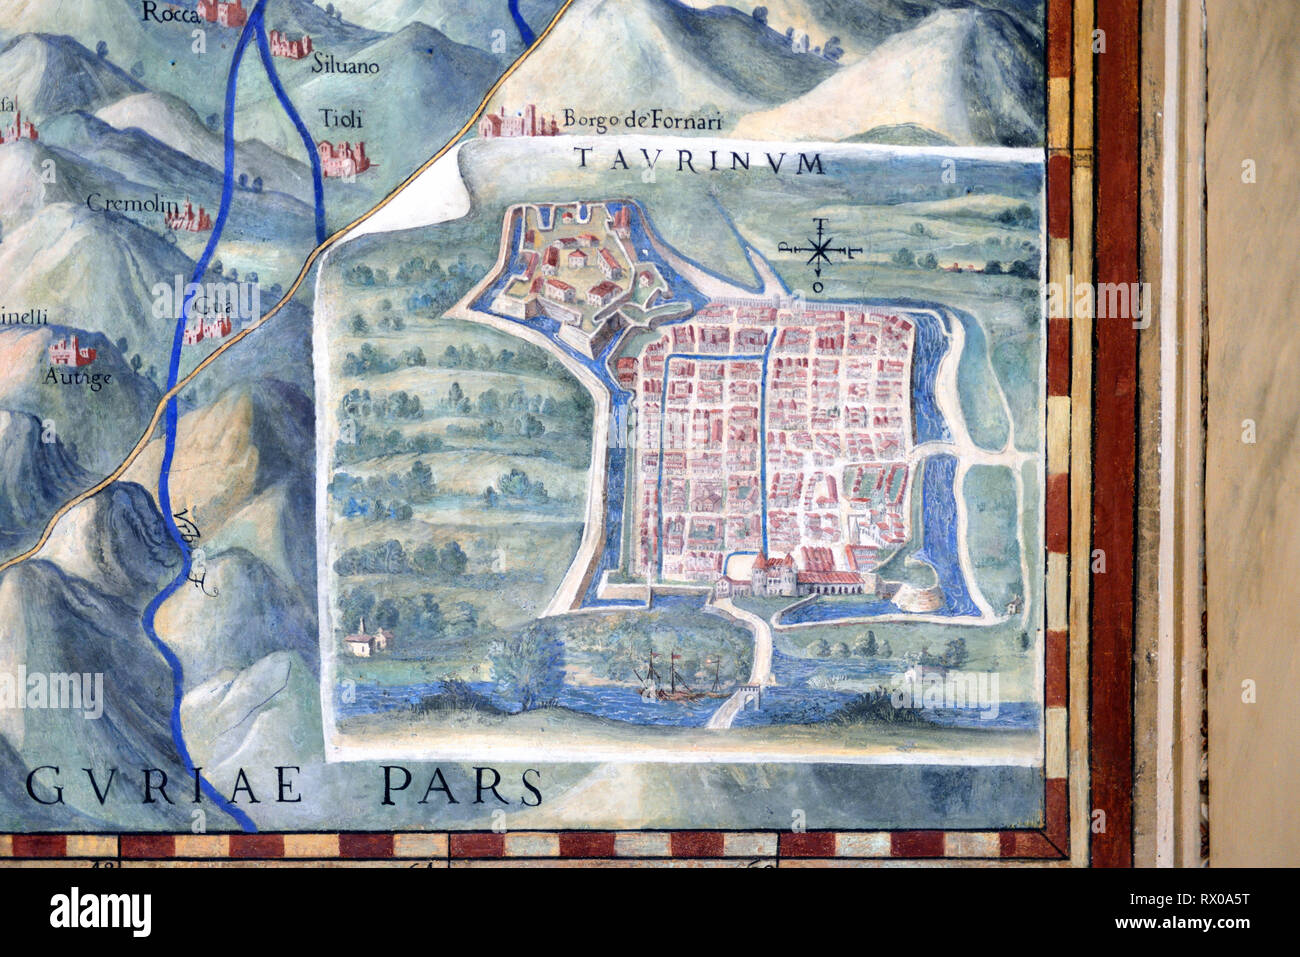 Town Plan or Old Map of Turin, Italy. Fresco or Wall Painting in Gallery of Maps (1580-83) based on Drawings by Ignazio Danti Vatican Museums - Stock Image